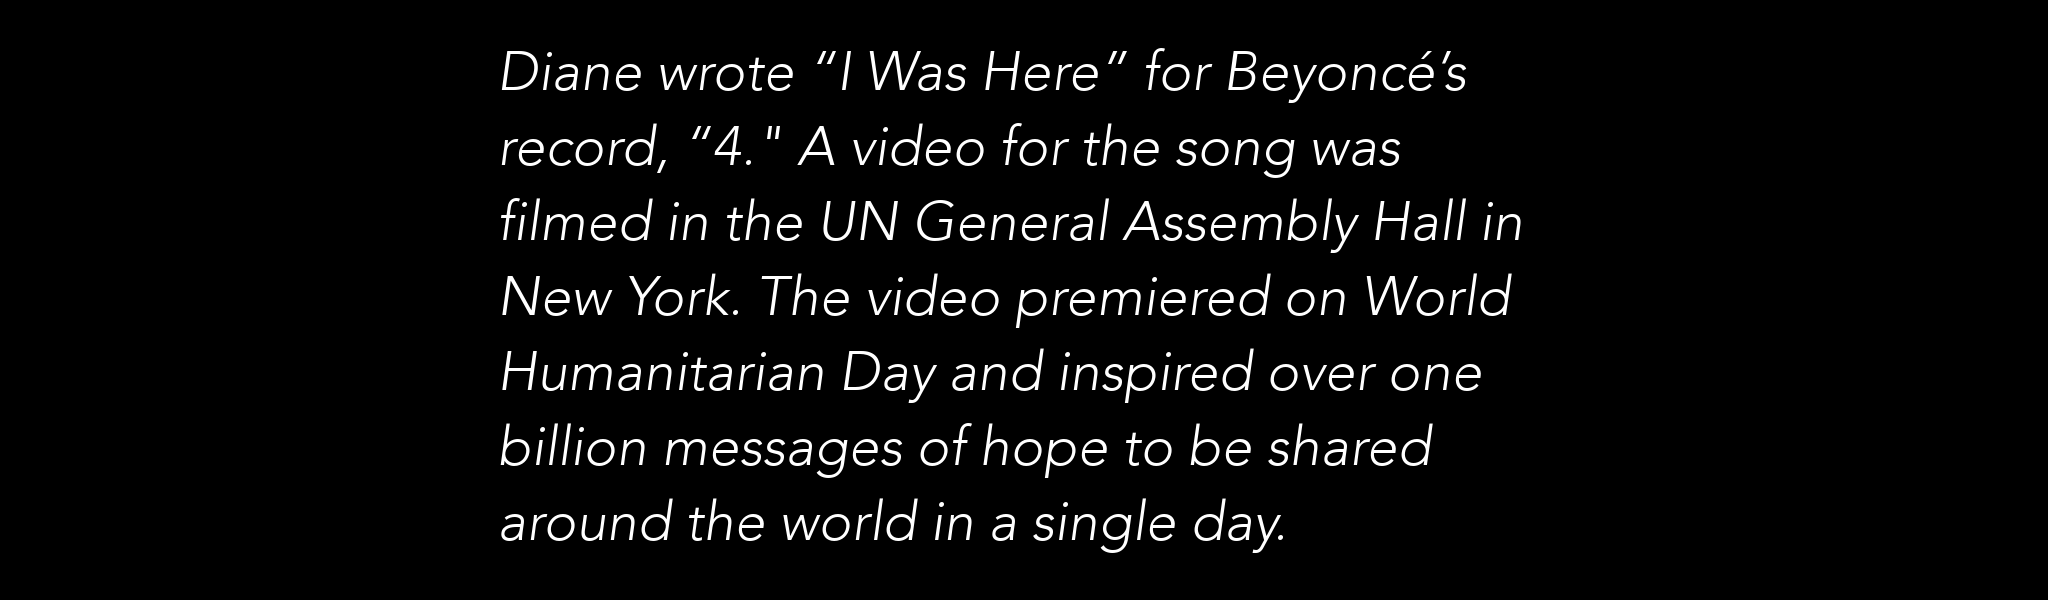 Beyonce I Was Here Fact Slider 1.1